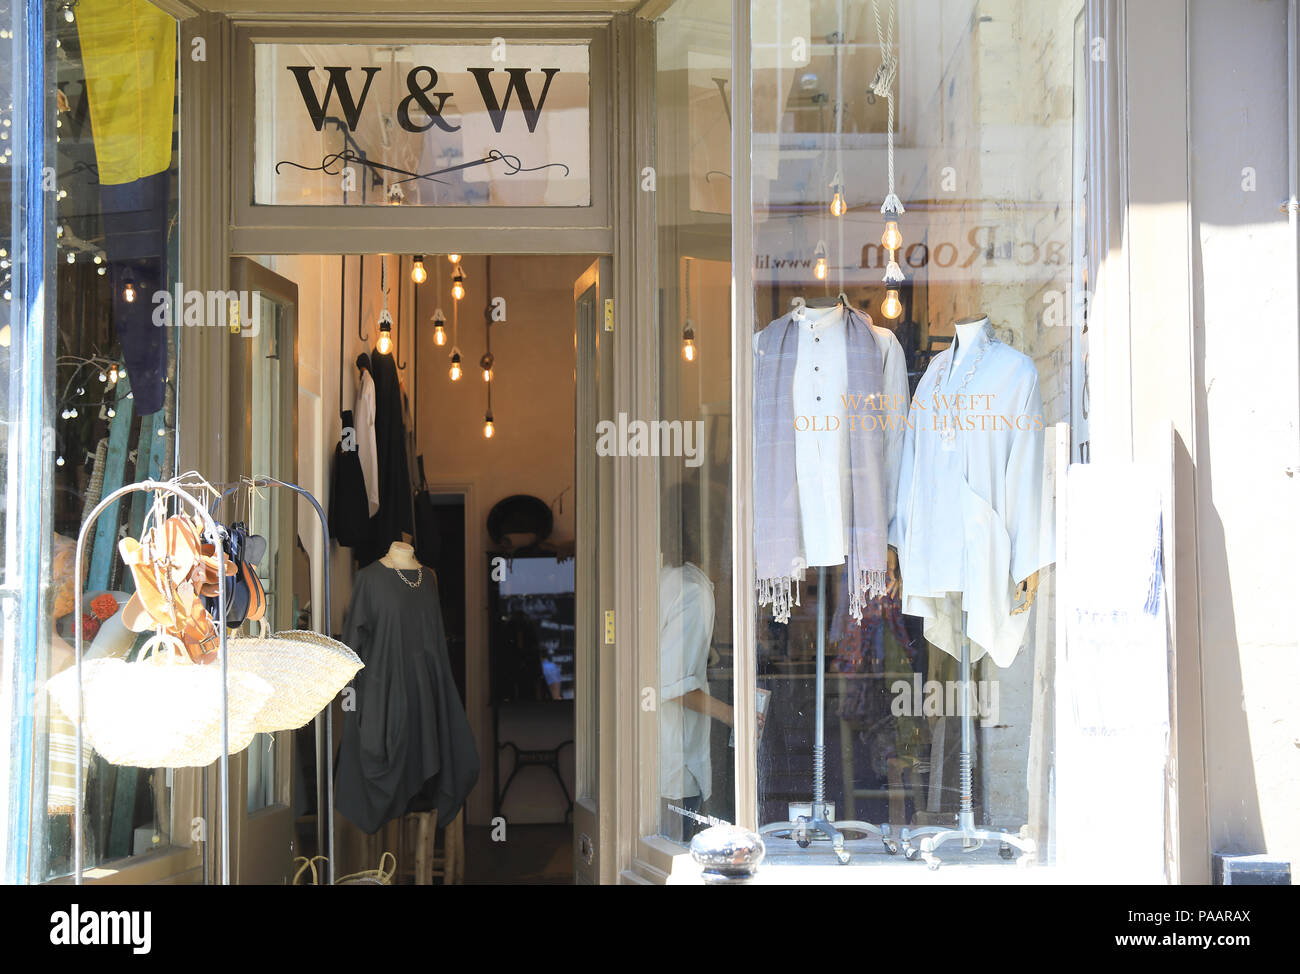 Warp & Weft independent boutique on vibrant George Street in Hastings Old Town, in East Sussex, UK - Stock Image